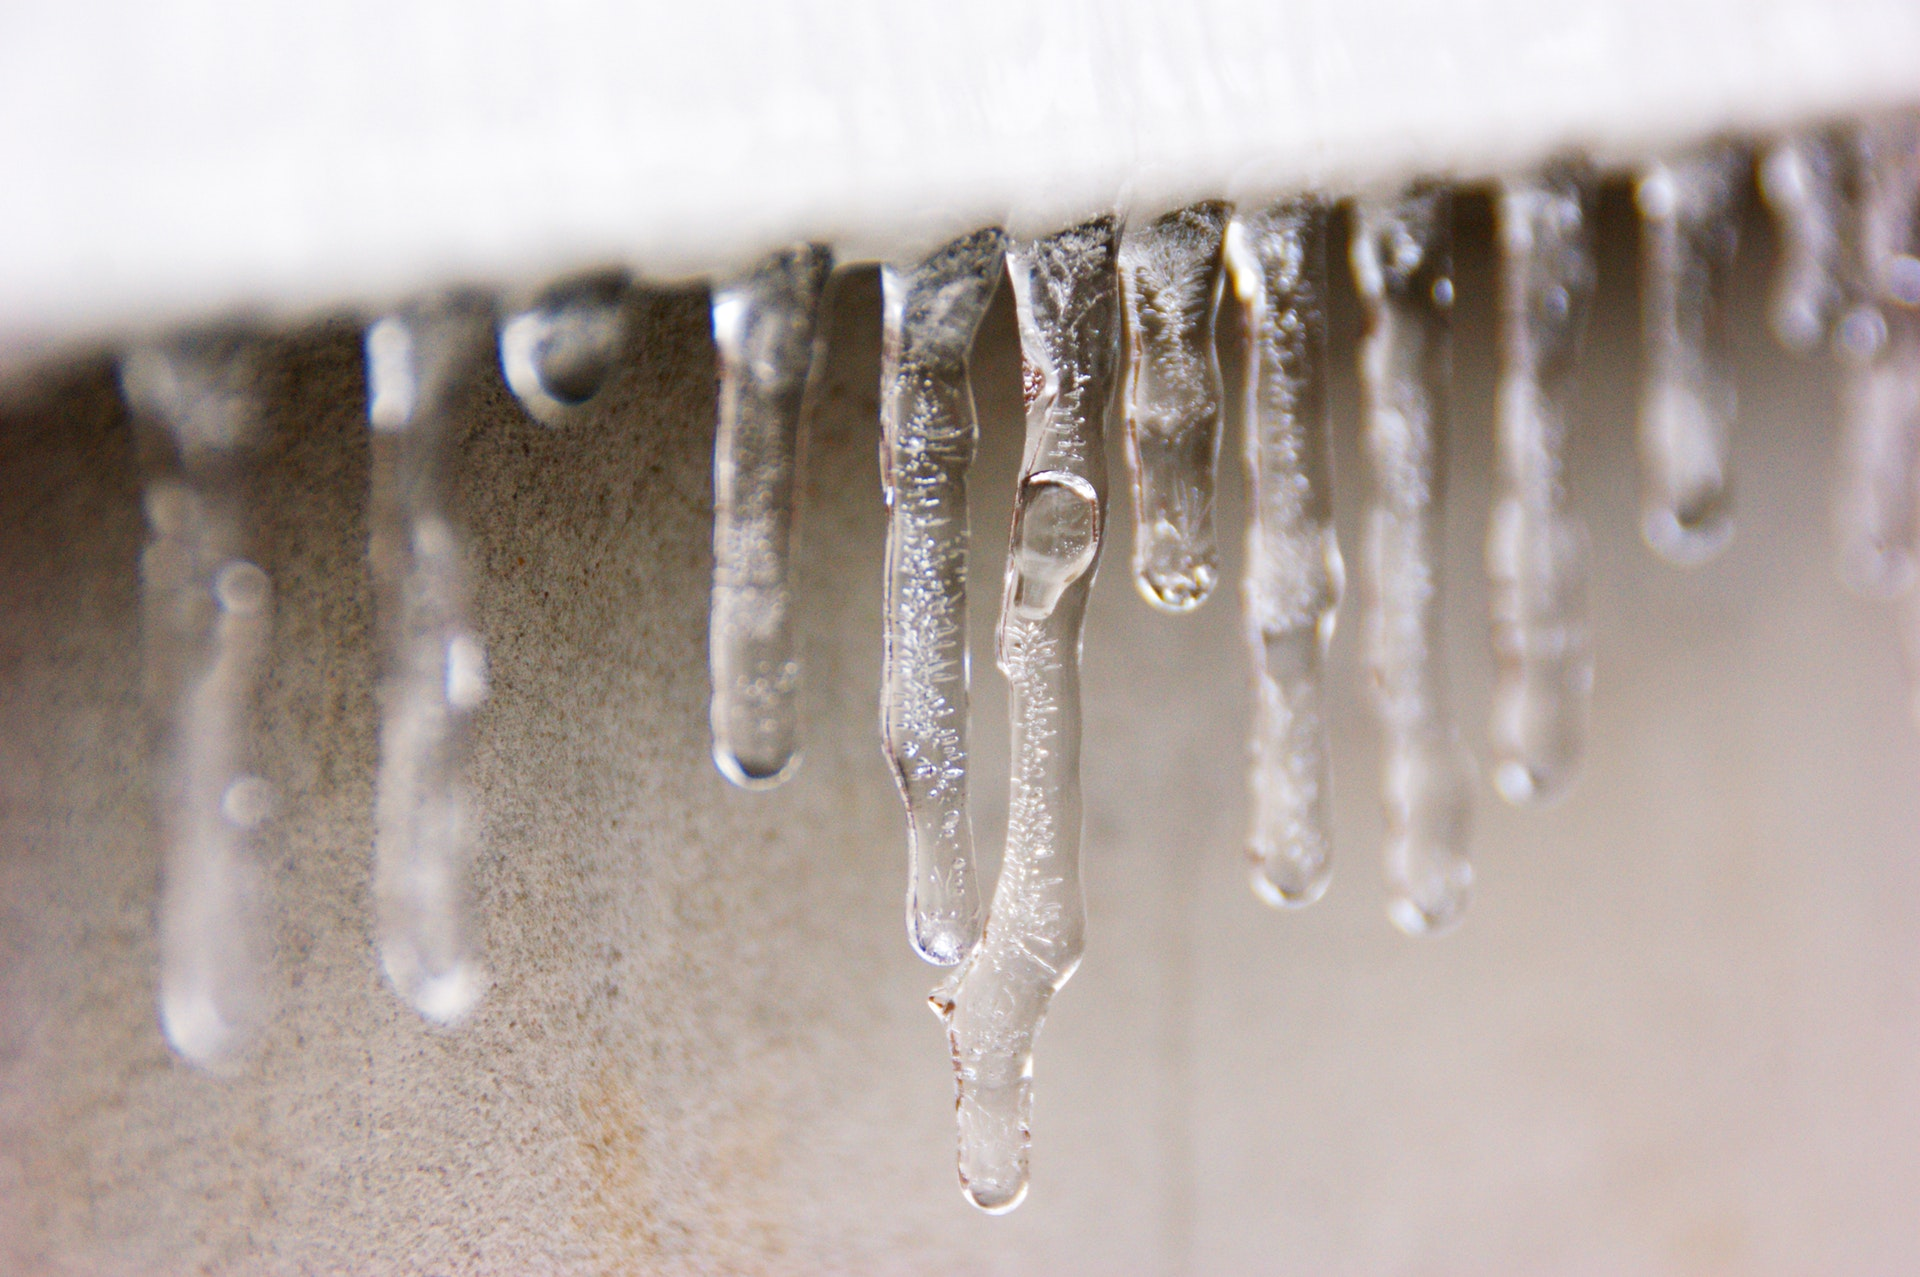 Picture of icicles